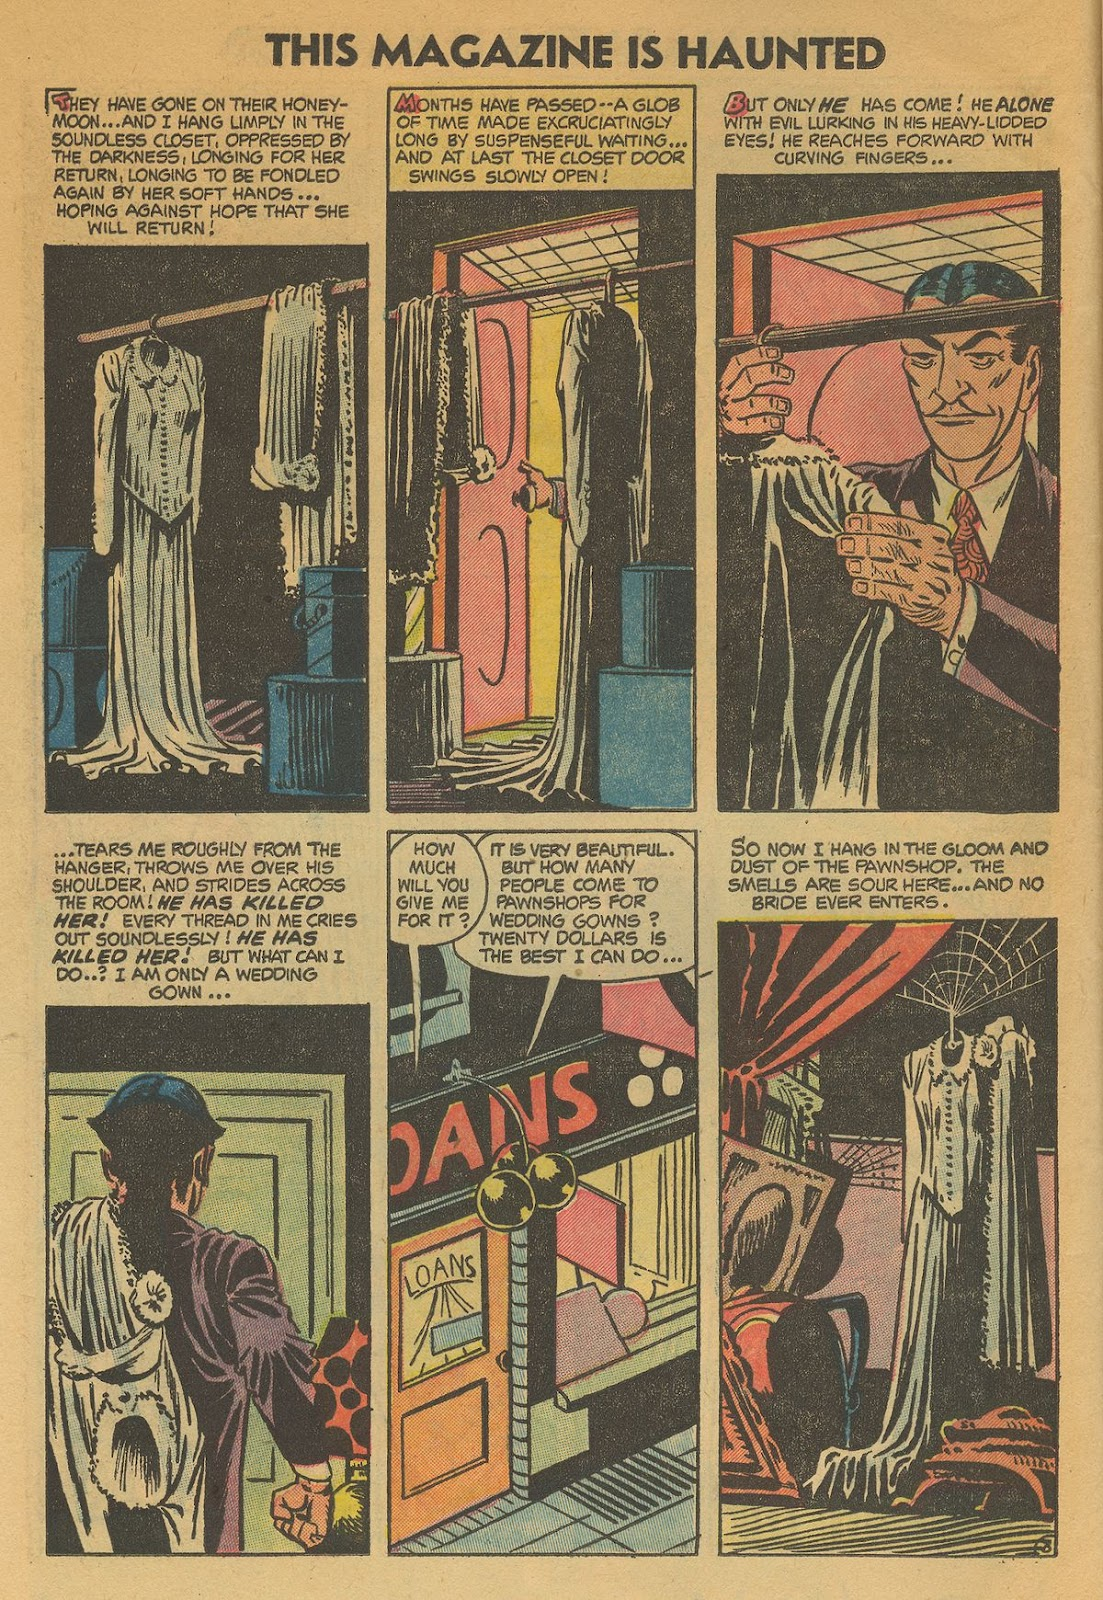 Read online This Magazine Is Haunted comic -  Issue #18 - 12